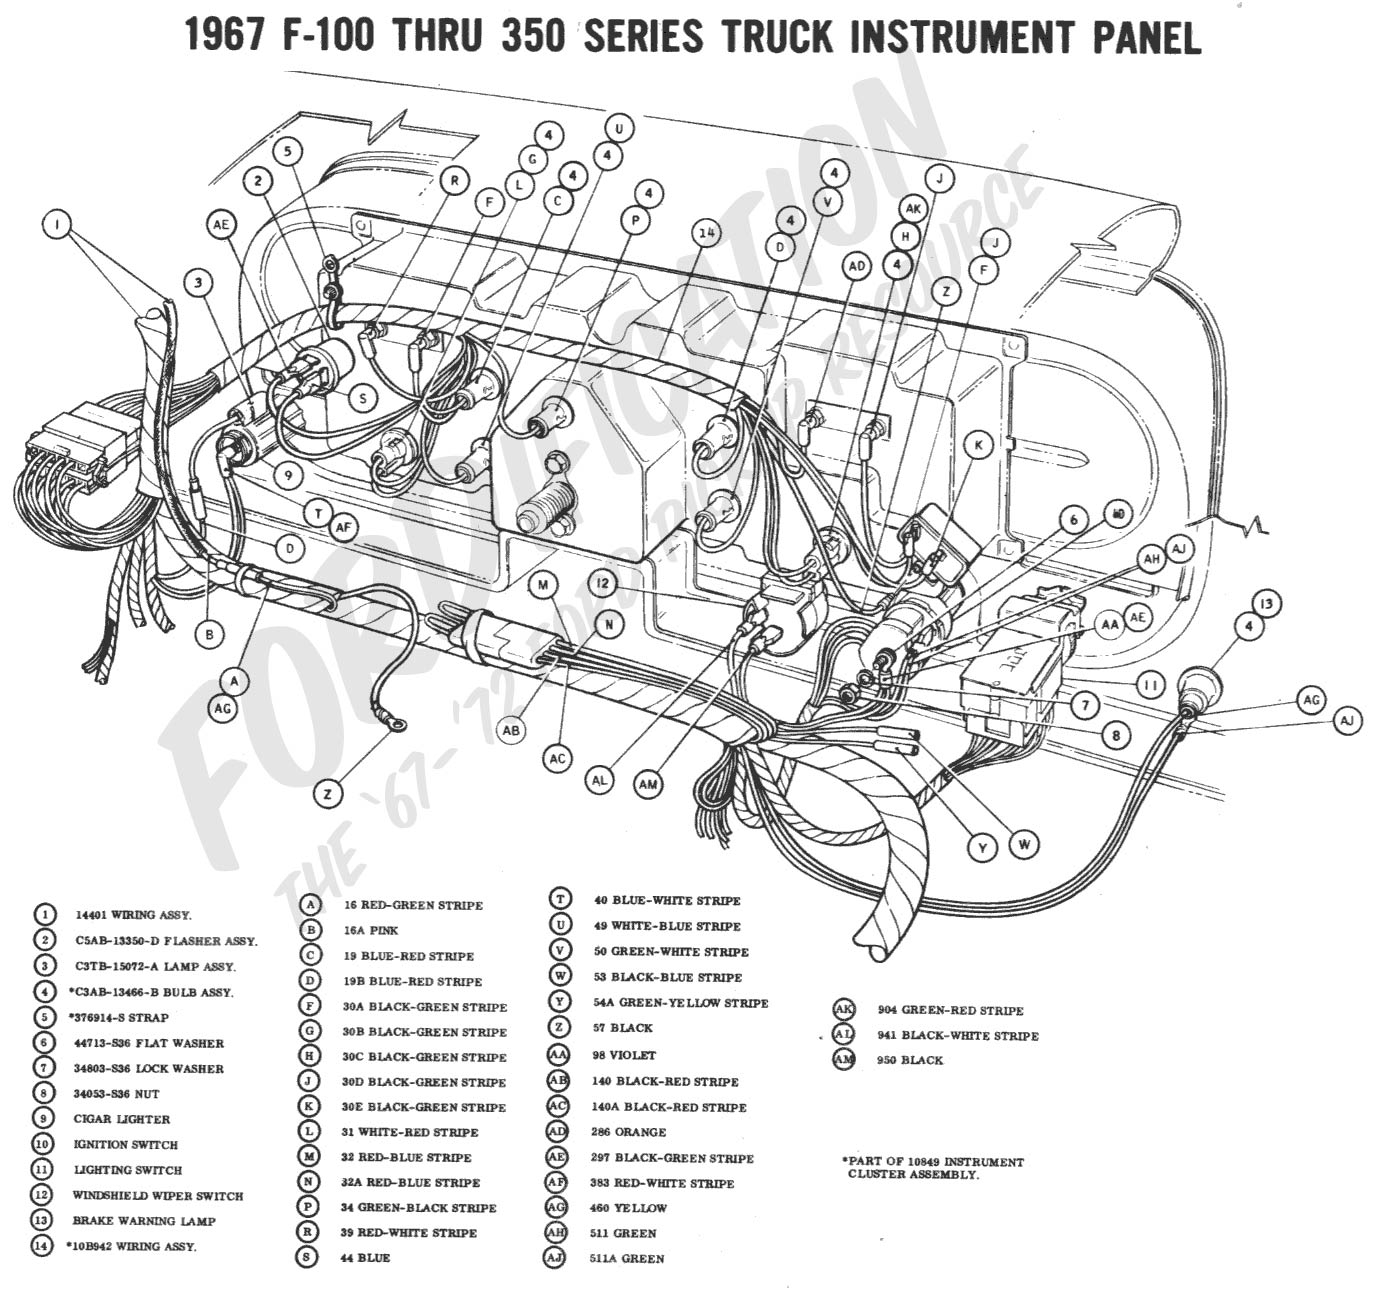 wiring 1967instrumentpanel ford truck technical drawings and schematics section h wiring wiring diagram 1968 ford mustang coupe at bayanpartner.co